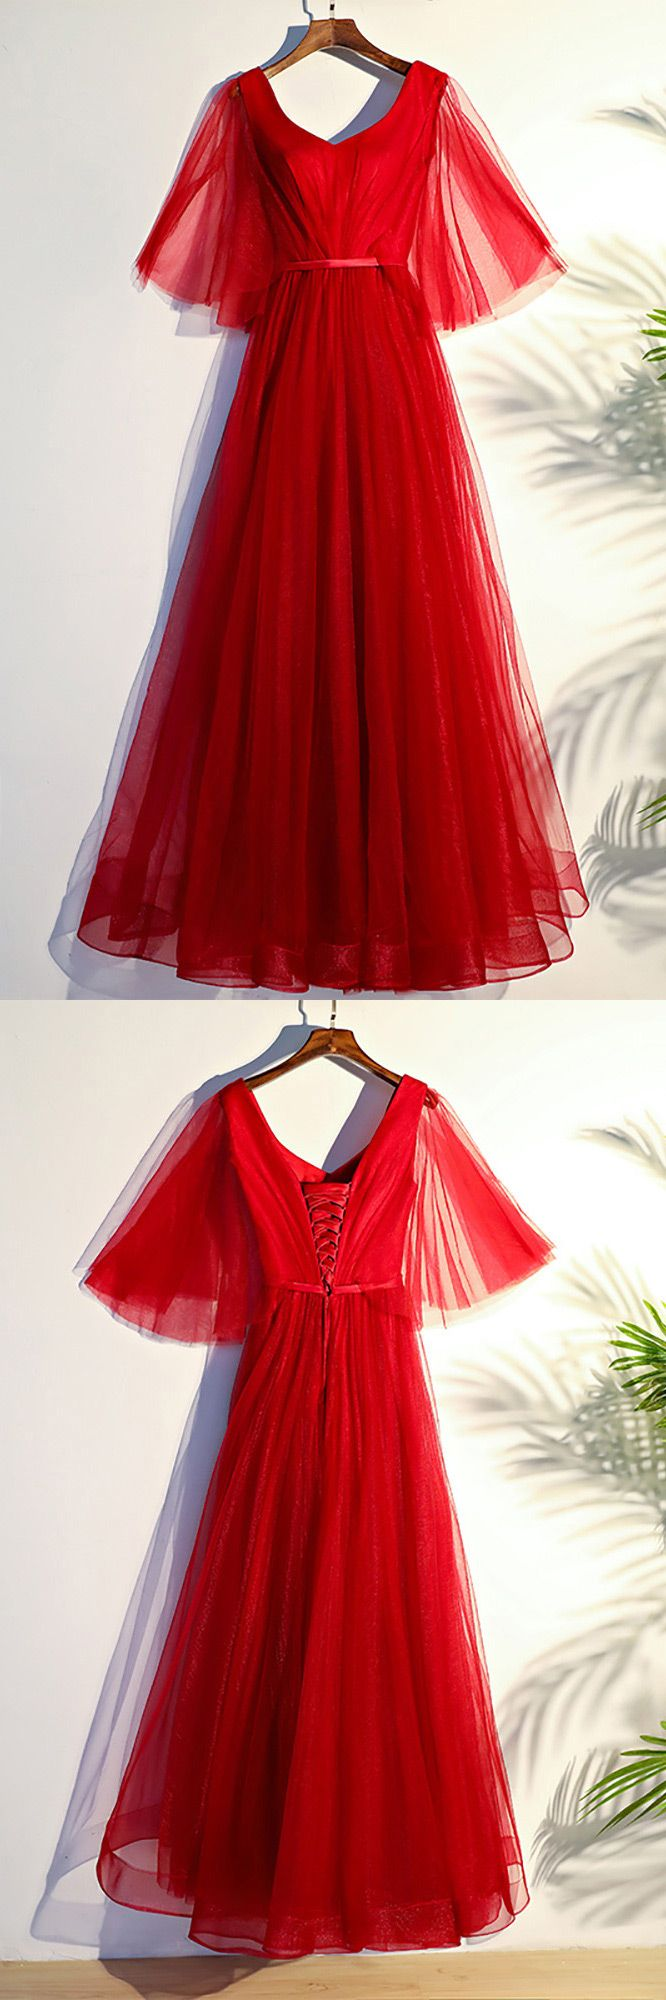 Flowy red butterfly sleeves long formal party dress myx